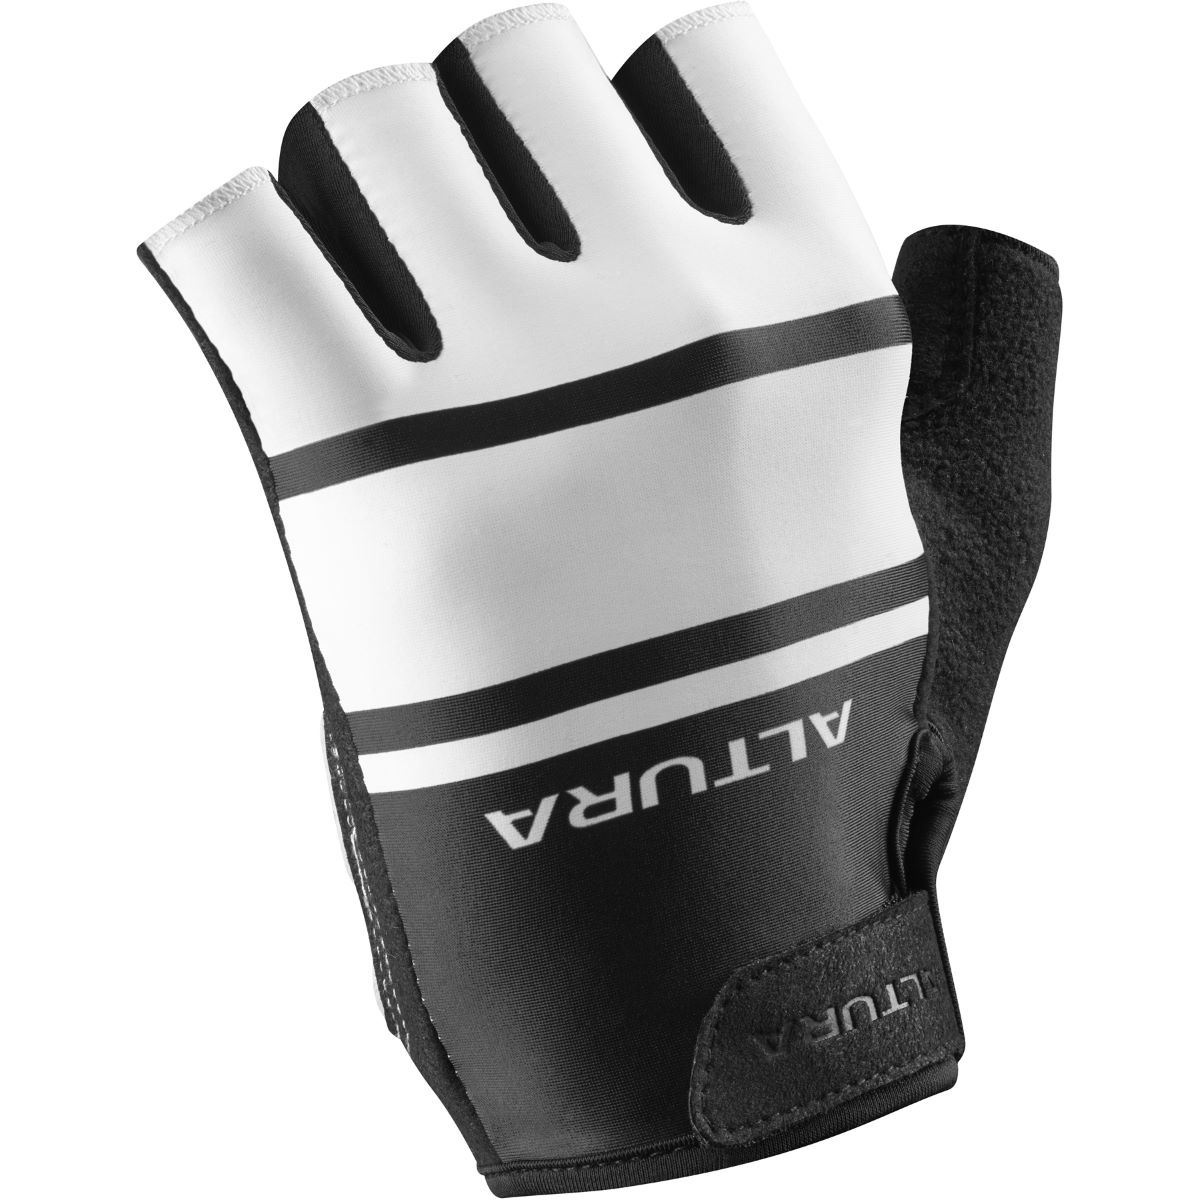 Altura Airstream 2 Mitts - L White/Black | Short Finger Gloves